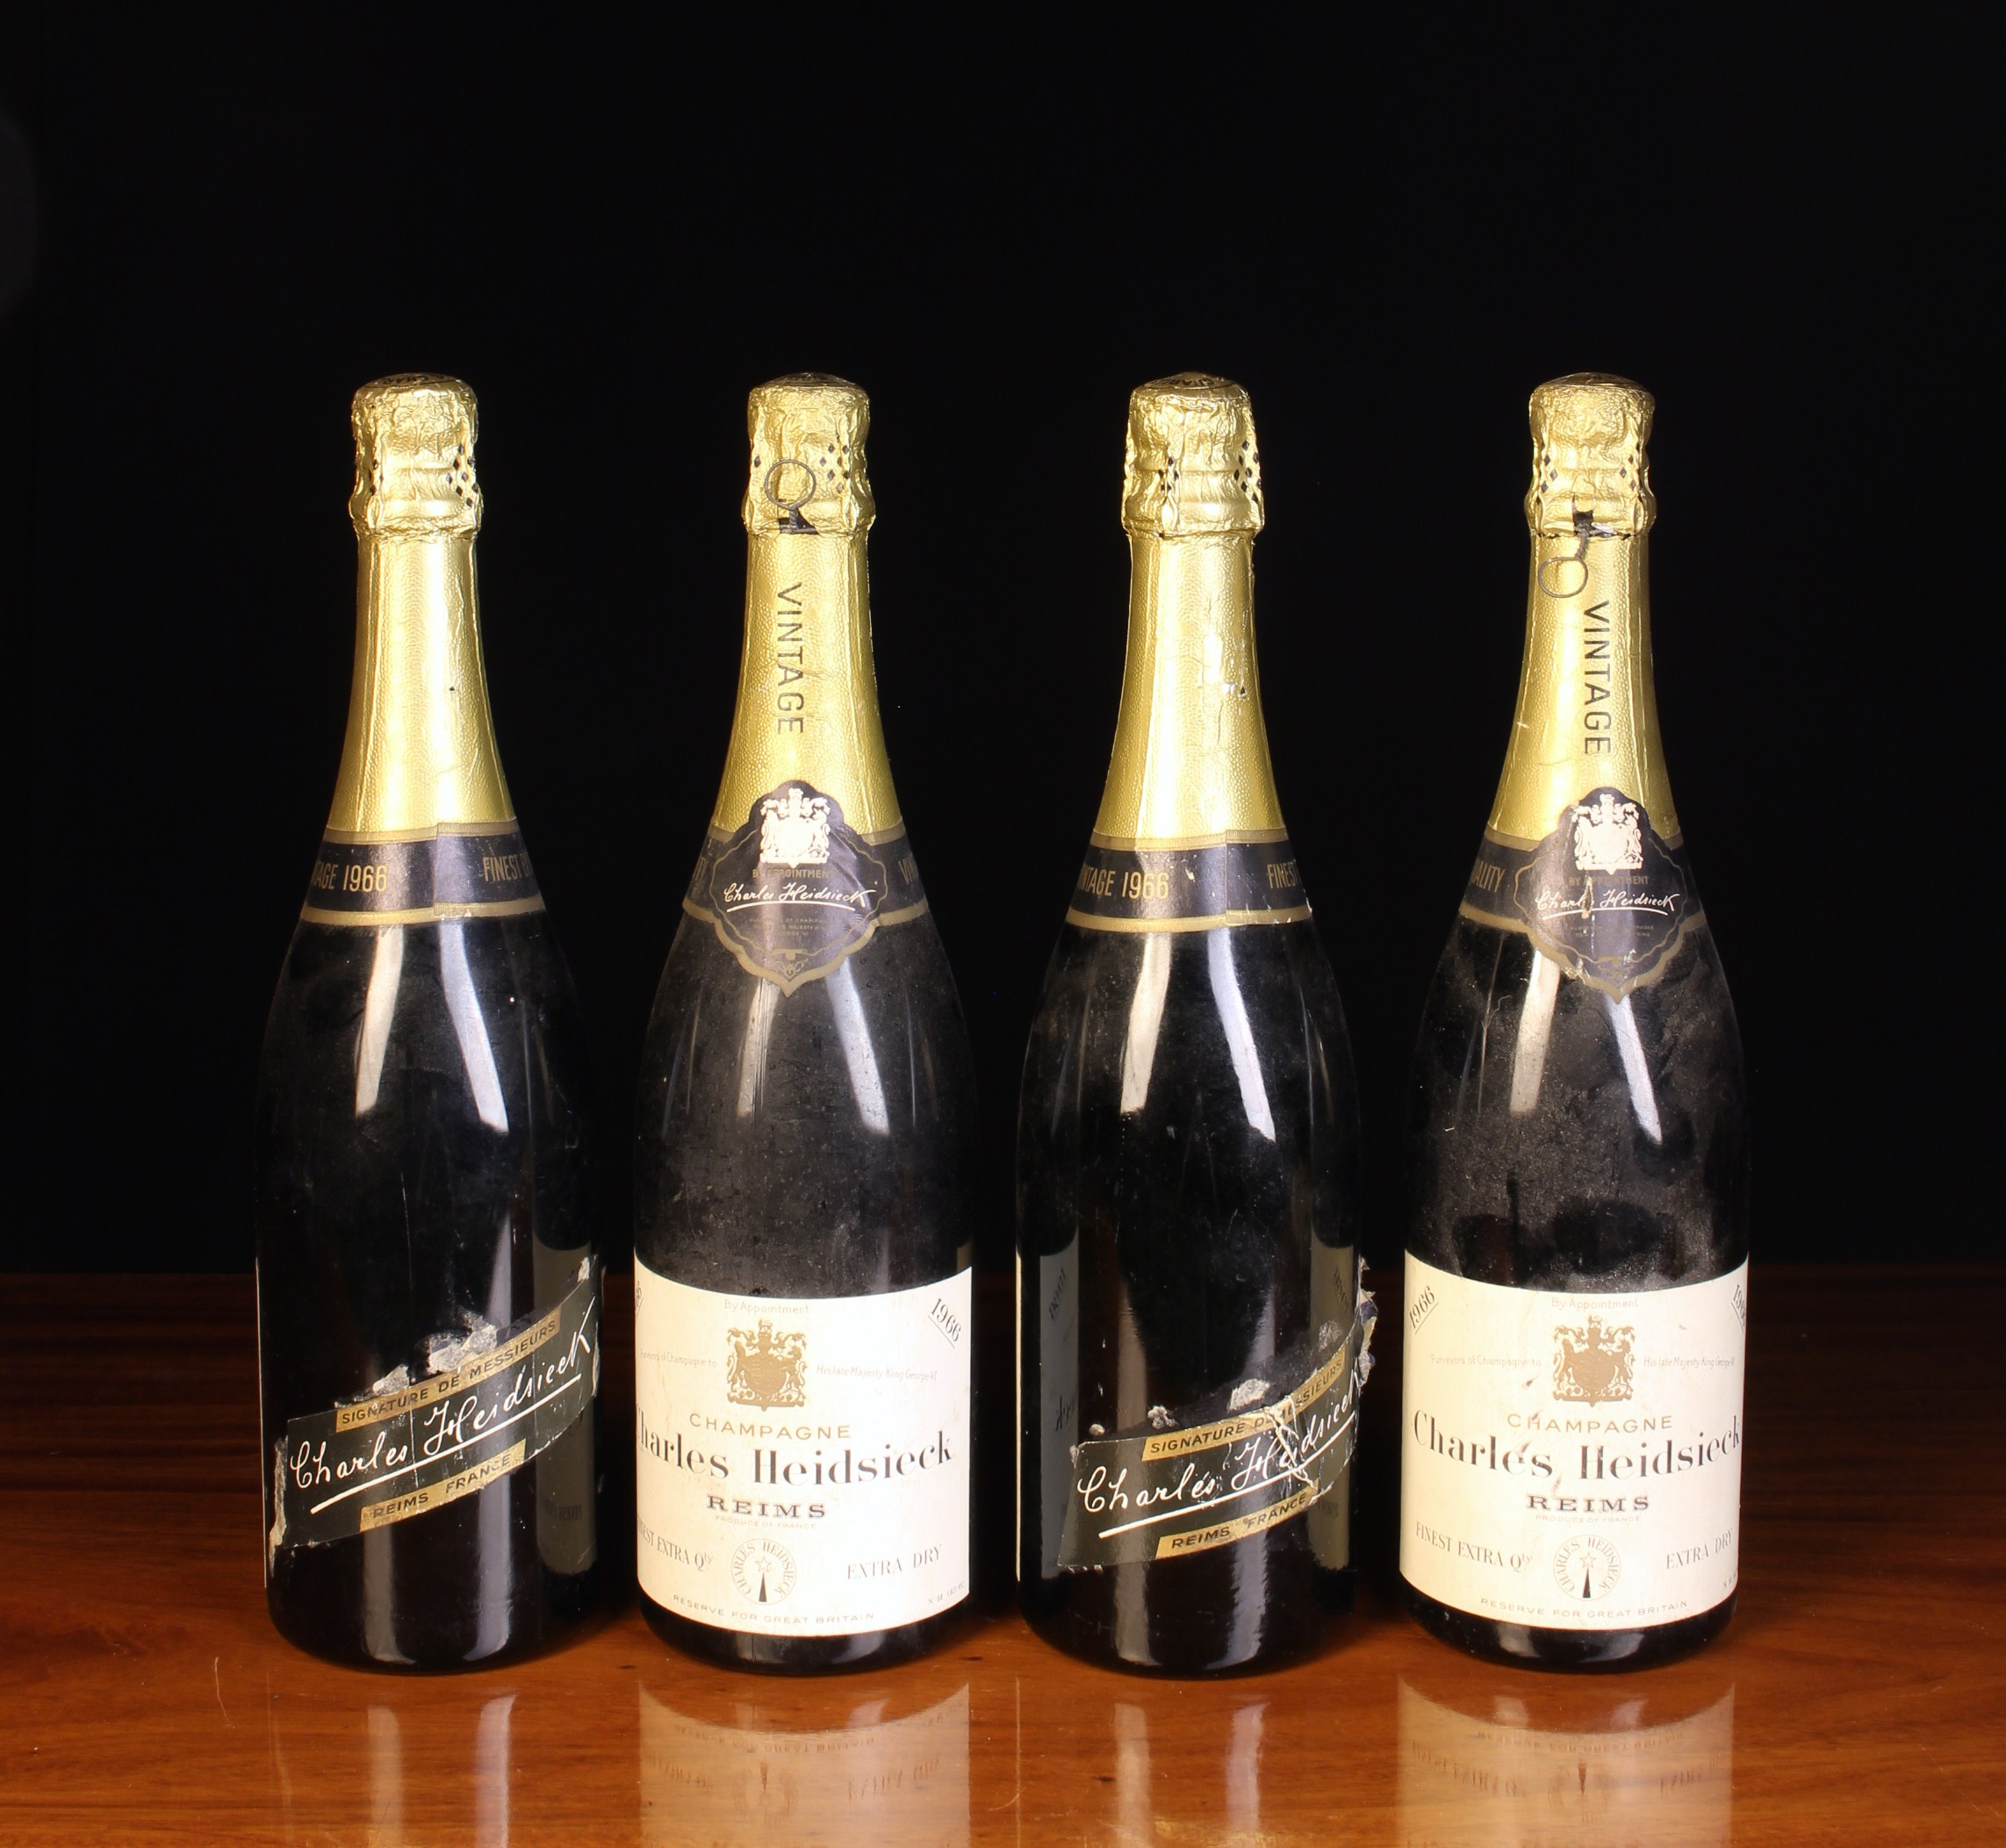 Four Bottles of 1966 Vintage Finest Quality Extra Dry Champagne by Charles Heidsieck,